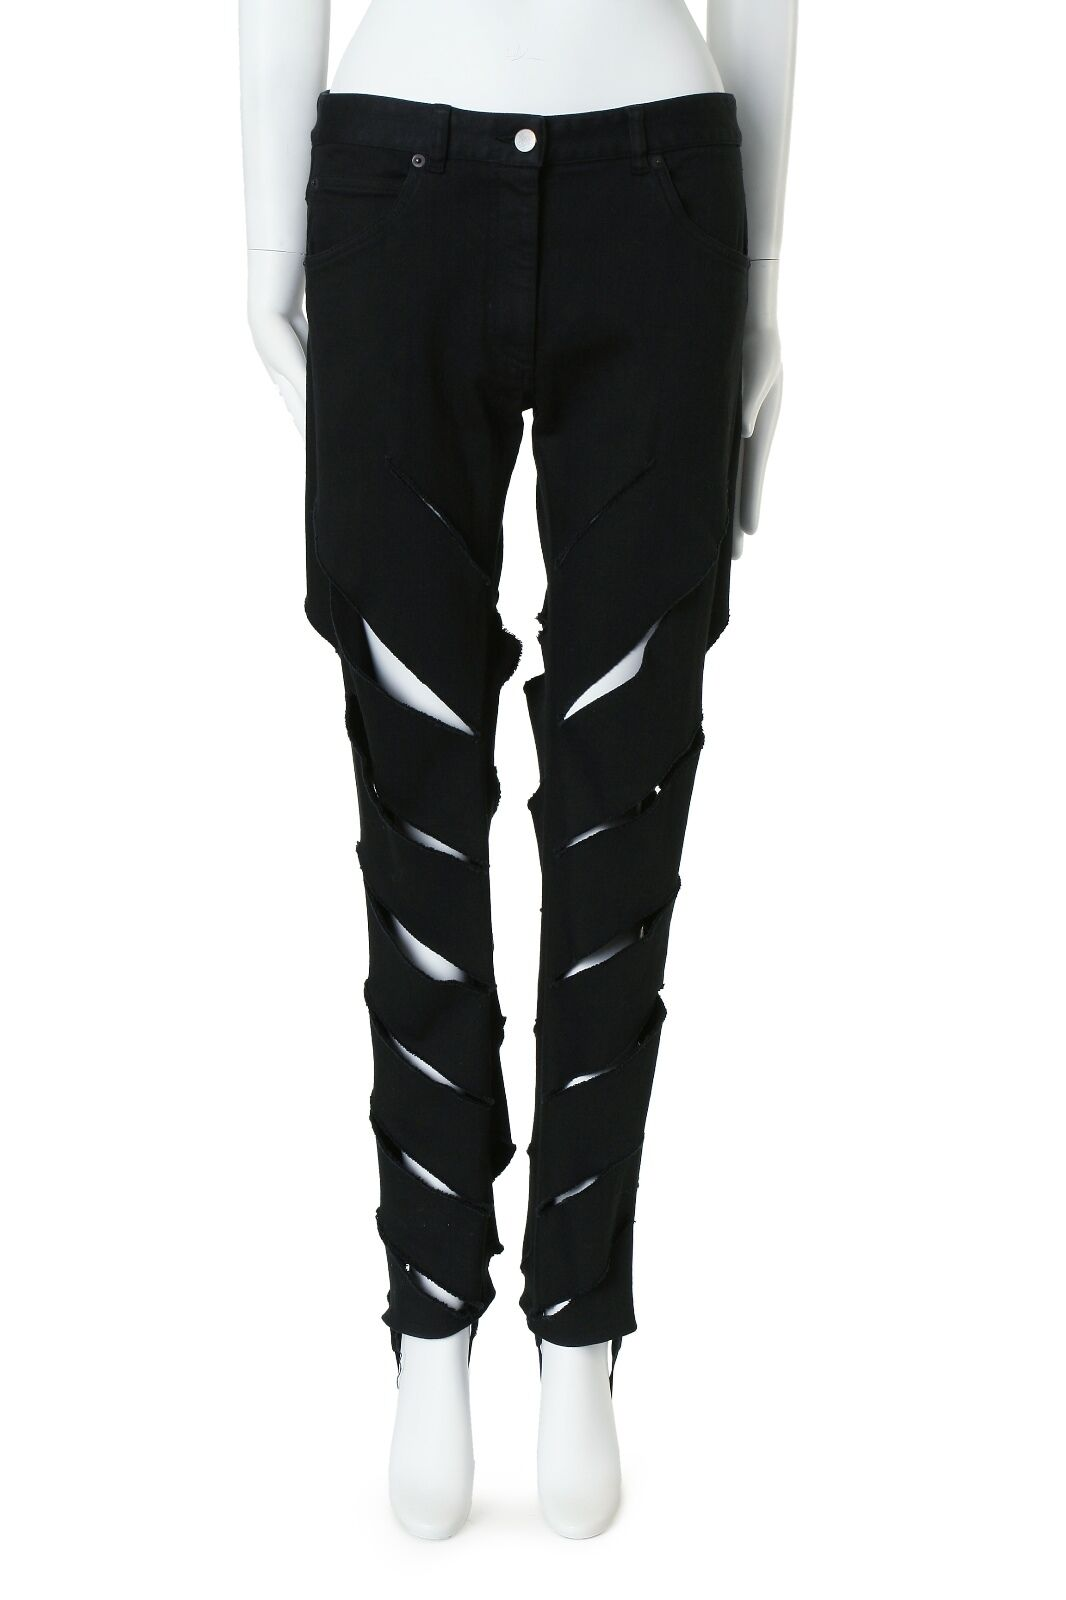 MARTIN MARGIELA diagonal slit deconstructed ripped jeans IT44 31